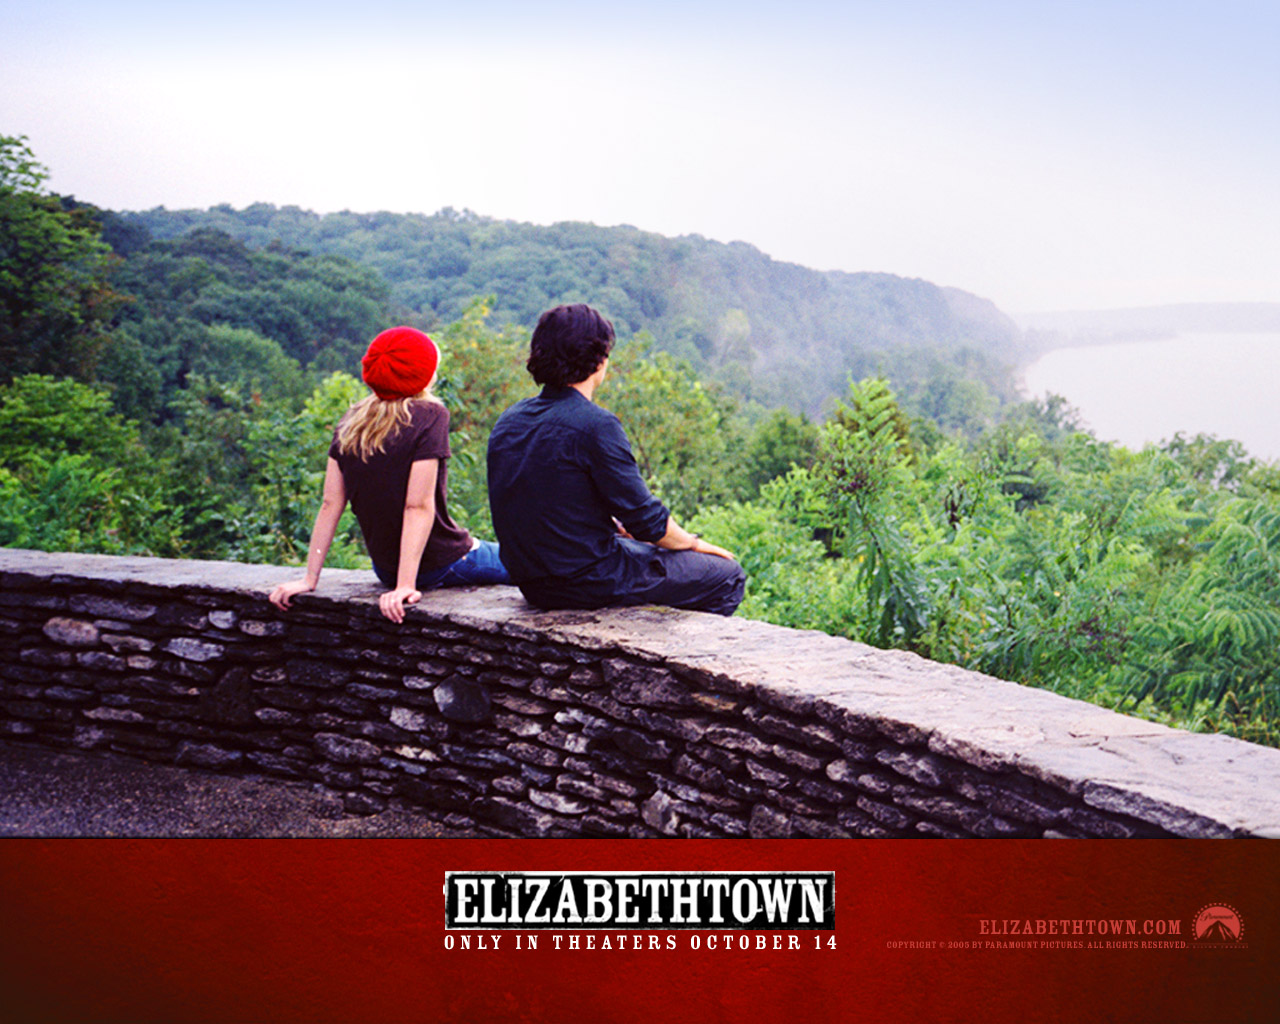 Film rencontres a elizabethtown streaming